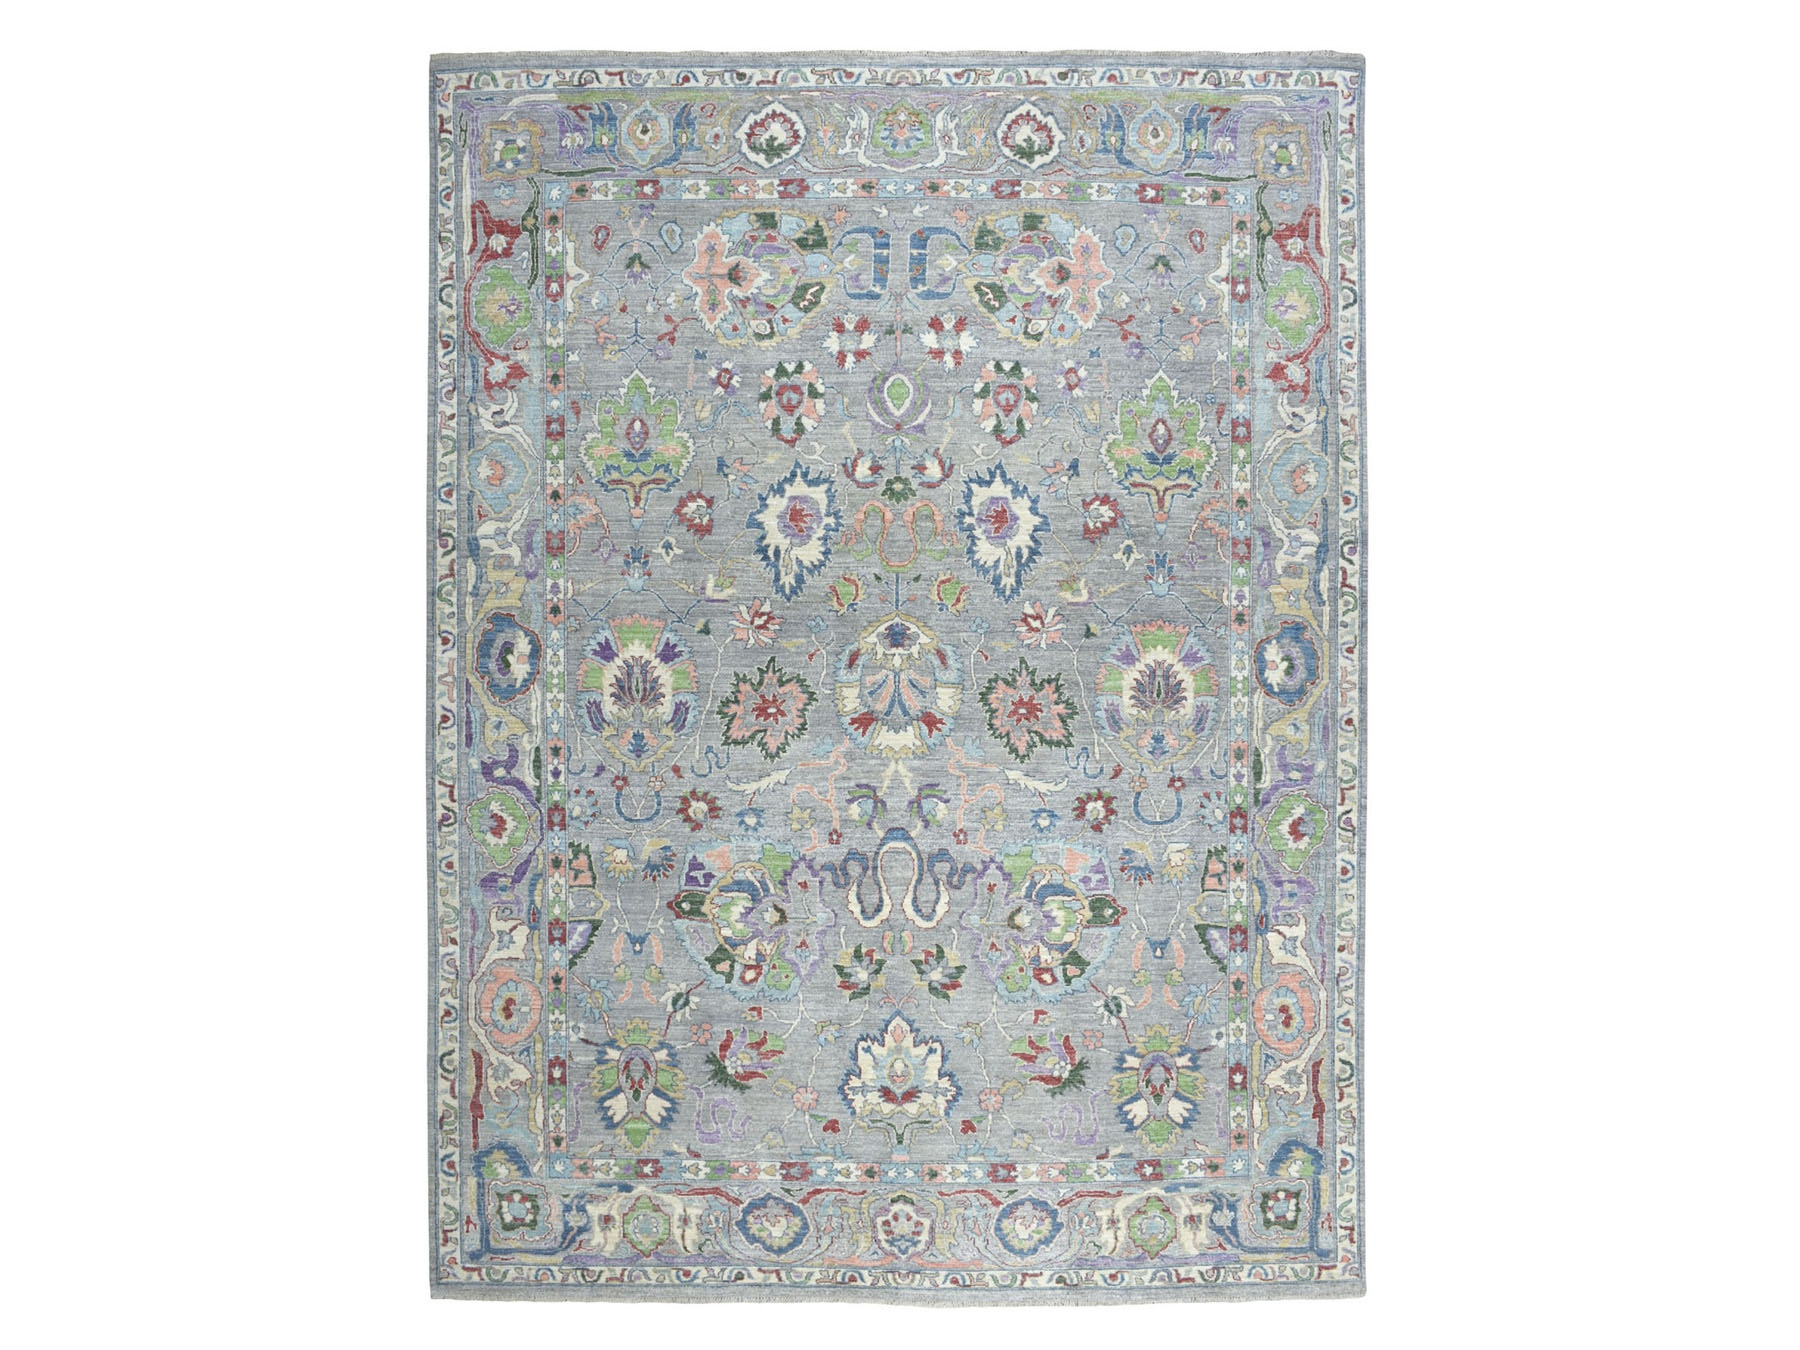 Transitional Wool Hand-Knotted Area Rug 9'0